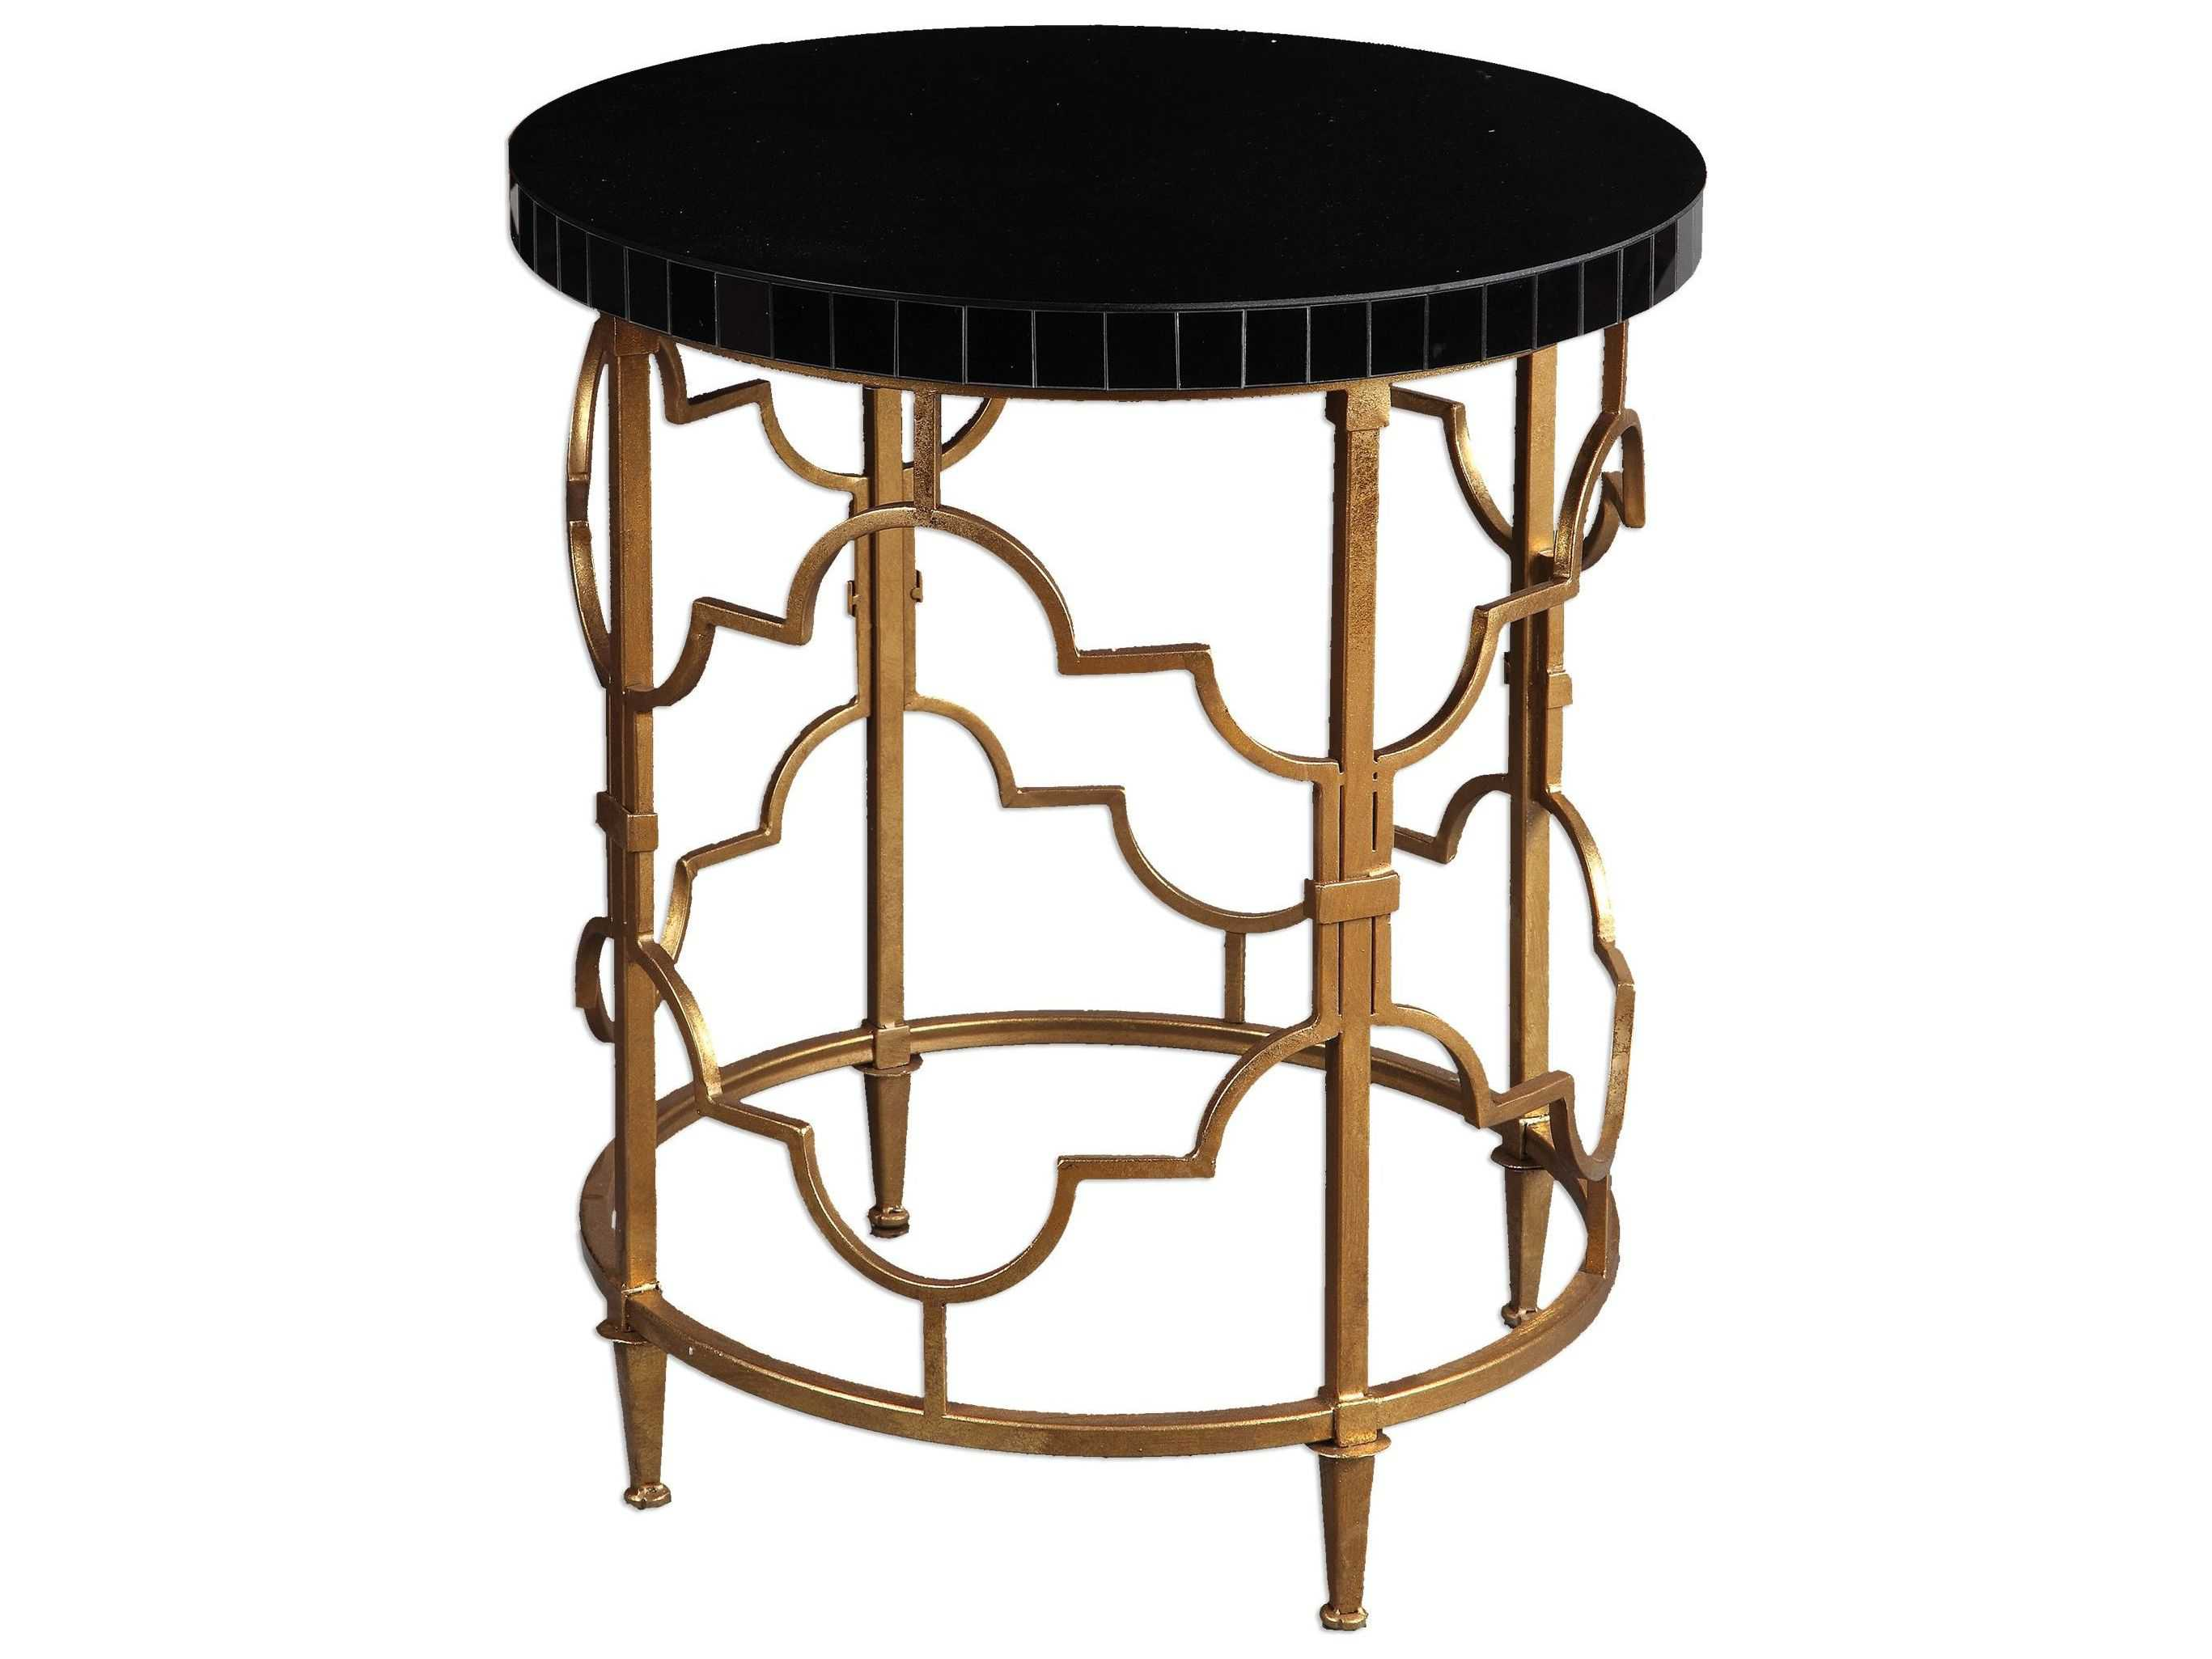 uttermost malo round accent table atg rattan mosi gold black jinan narrow sofa ikea circular cover door cabinet console chest green lamp outdoor coffee decoration ideas tray oval